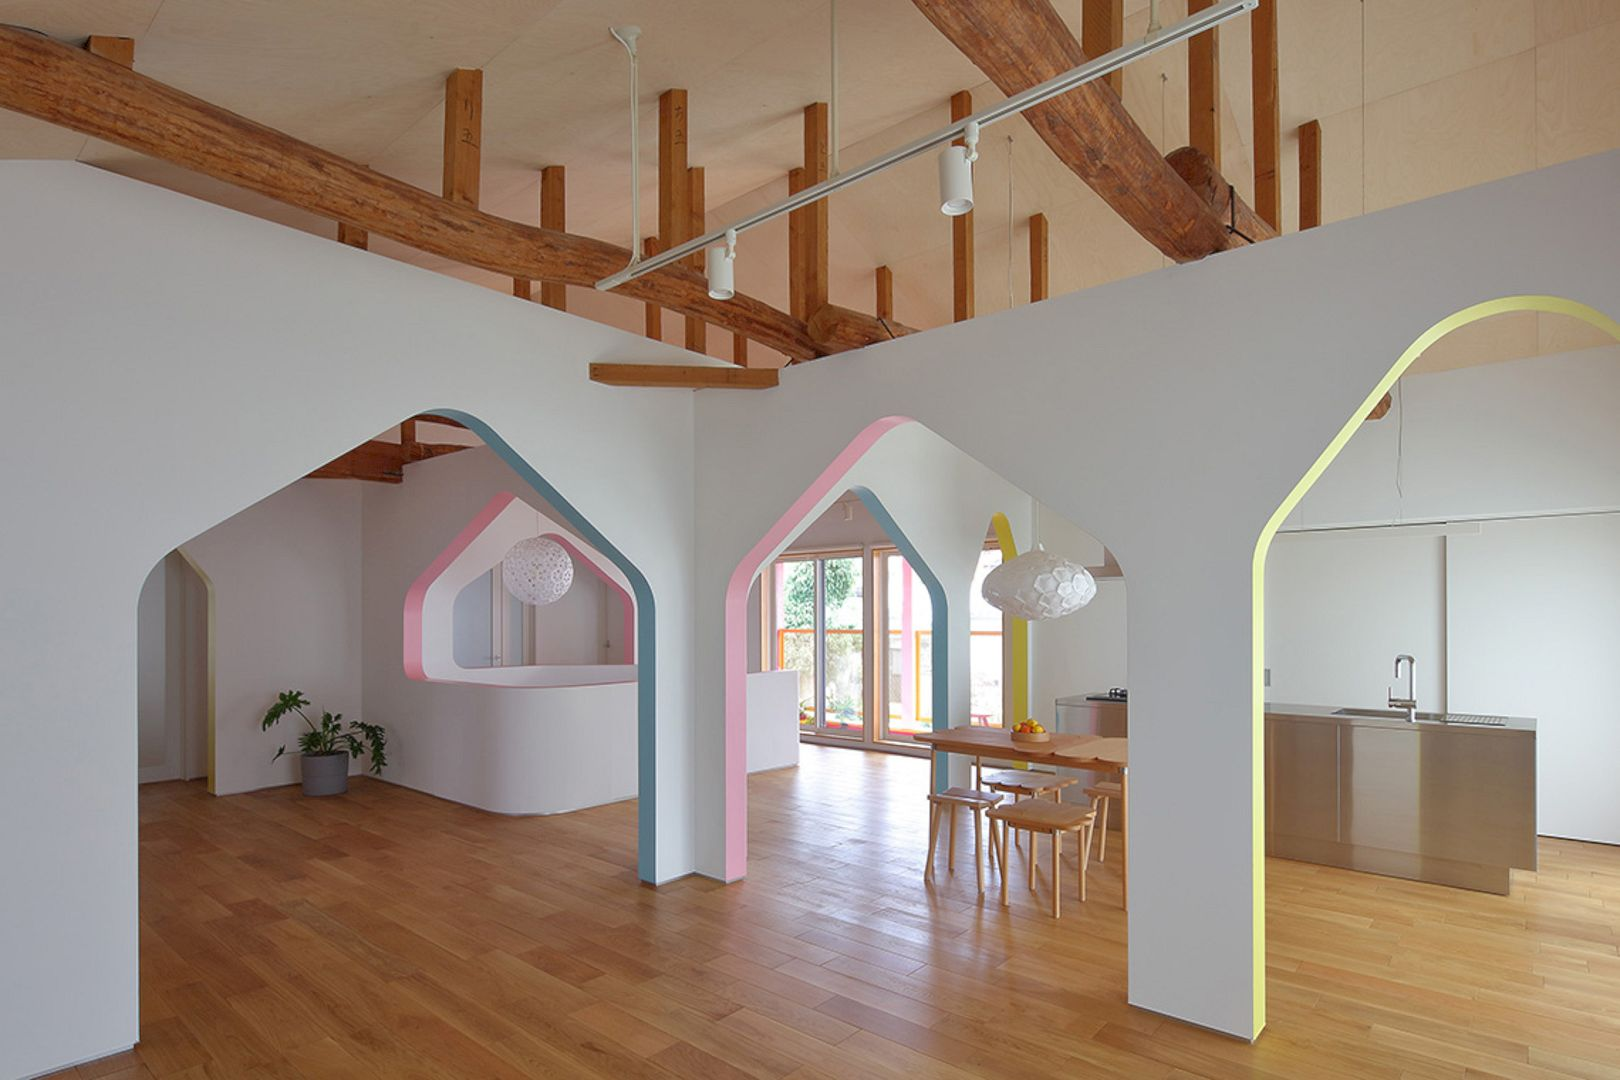 House Of Many Arches By 24d Studio 10